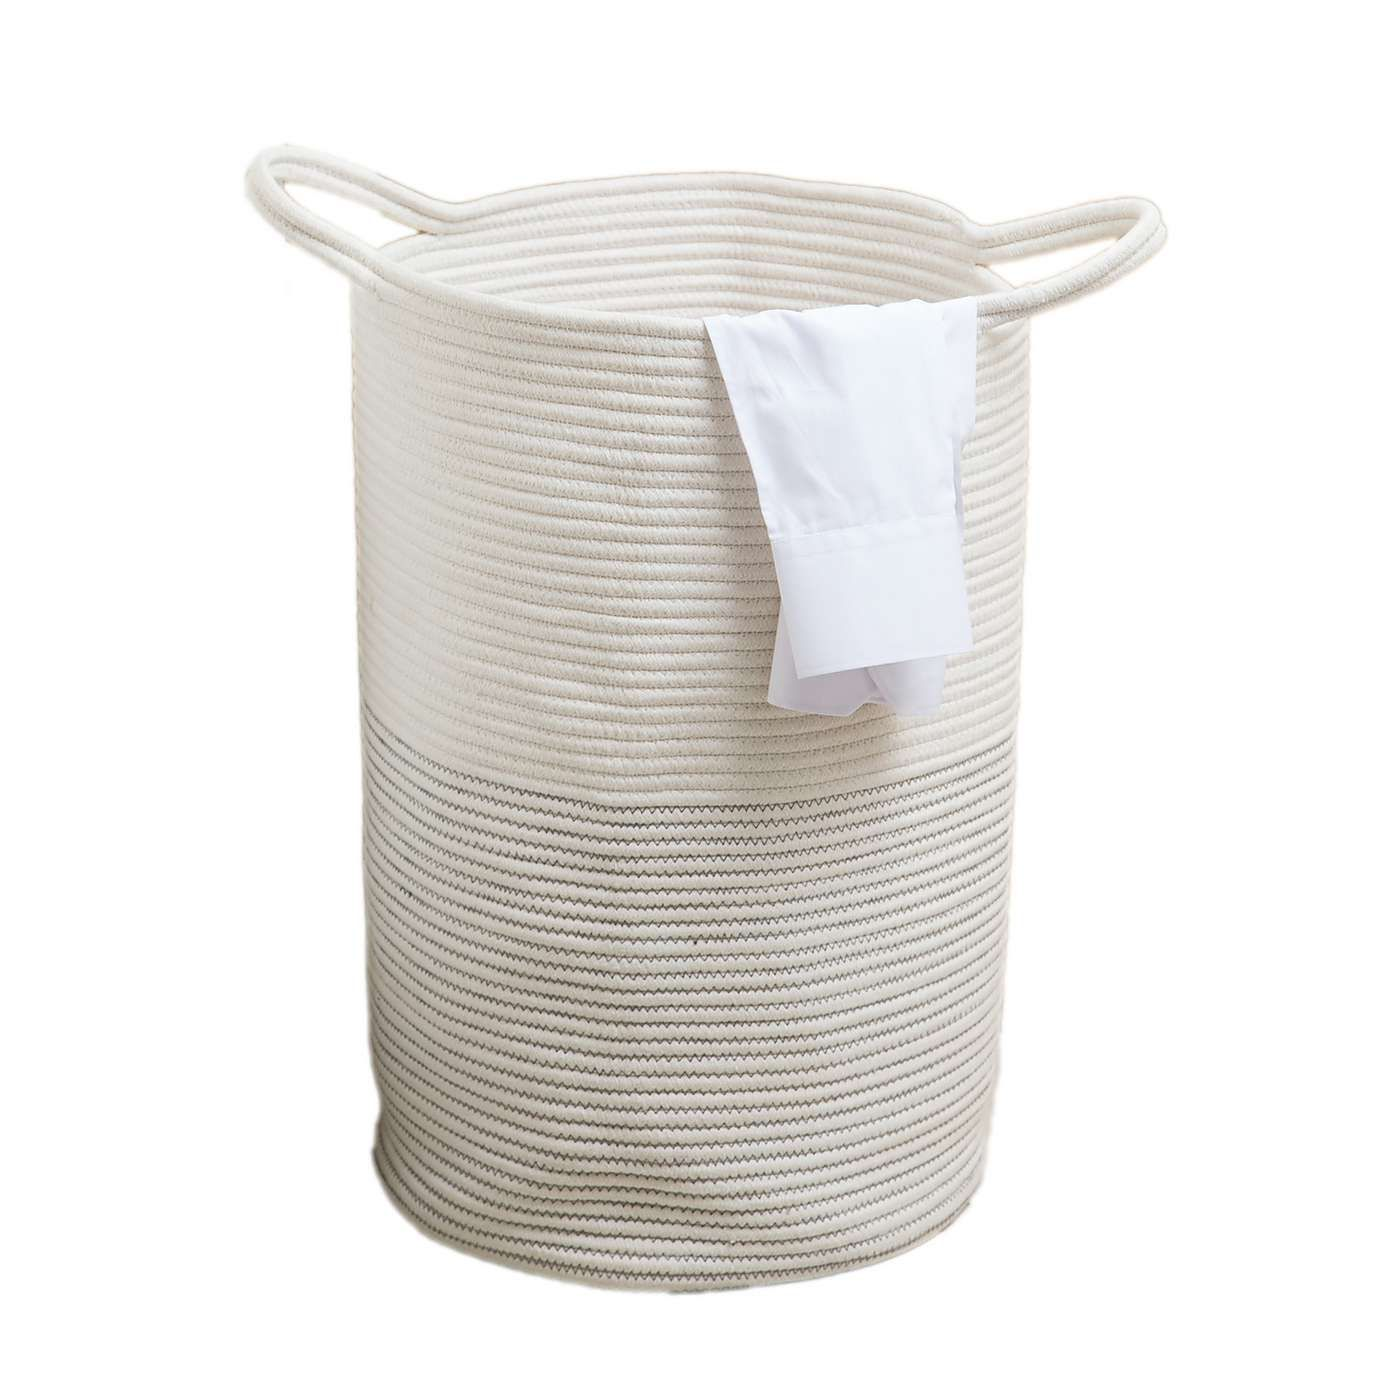 Laundry Bags With Handles Simple Dunelm Rope White Cotton Large Laundry Bag  Laundry White Laundry Decorating Design